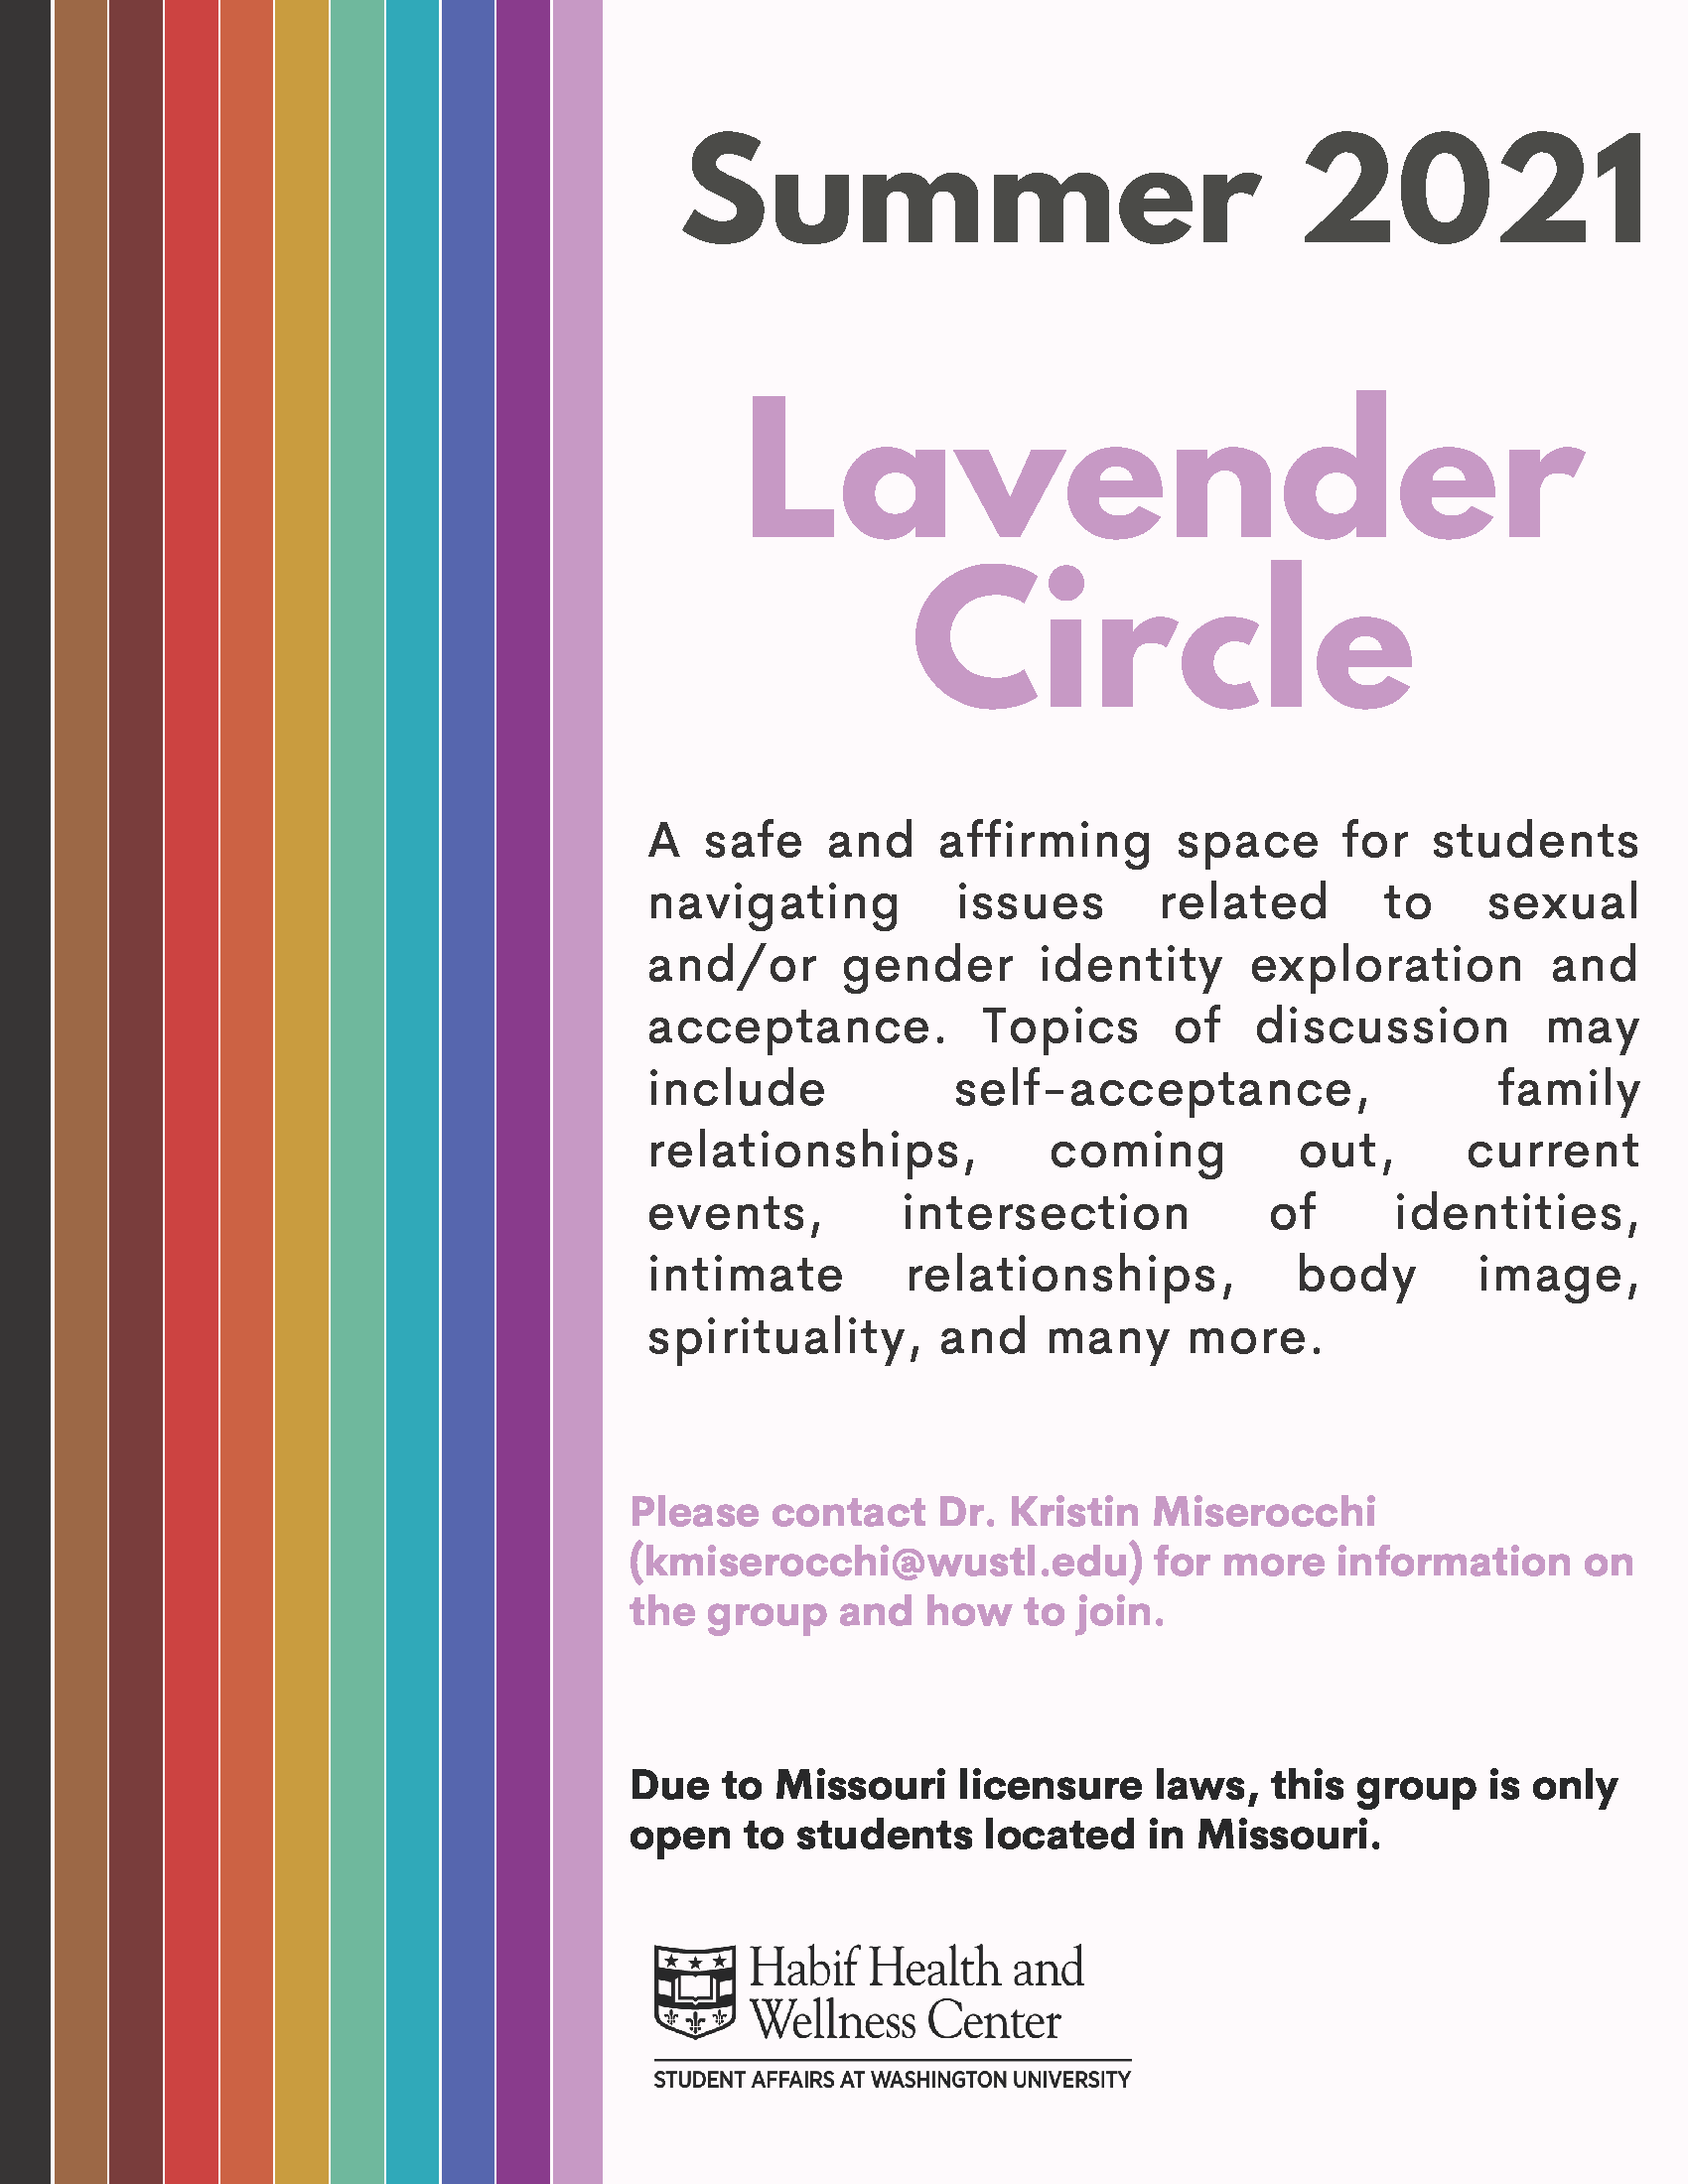 support group for LGBTQIA+ students led by mental health pro